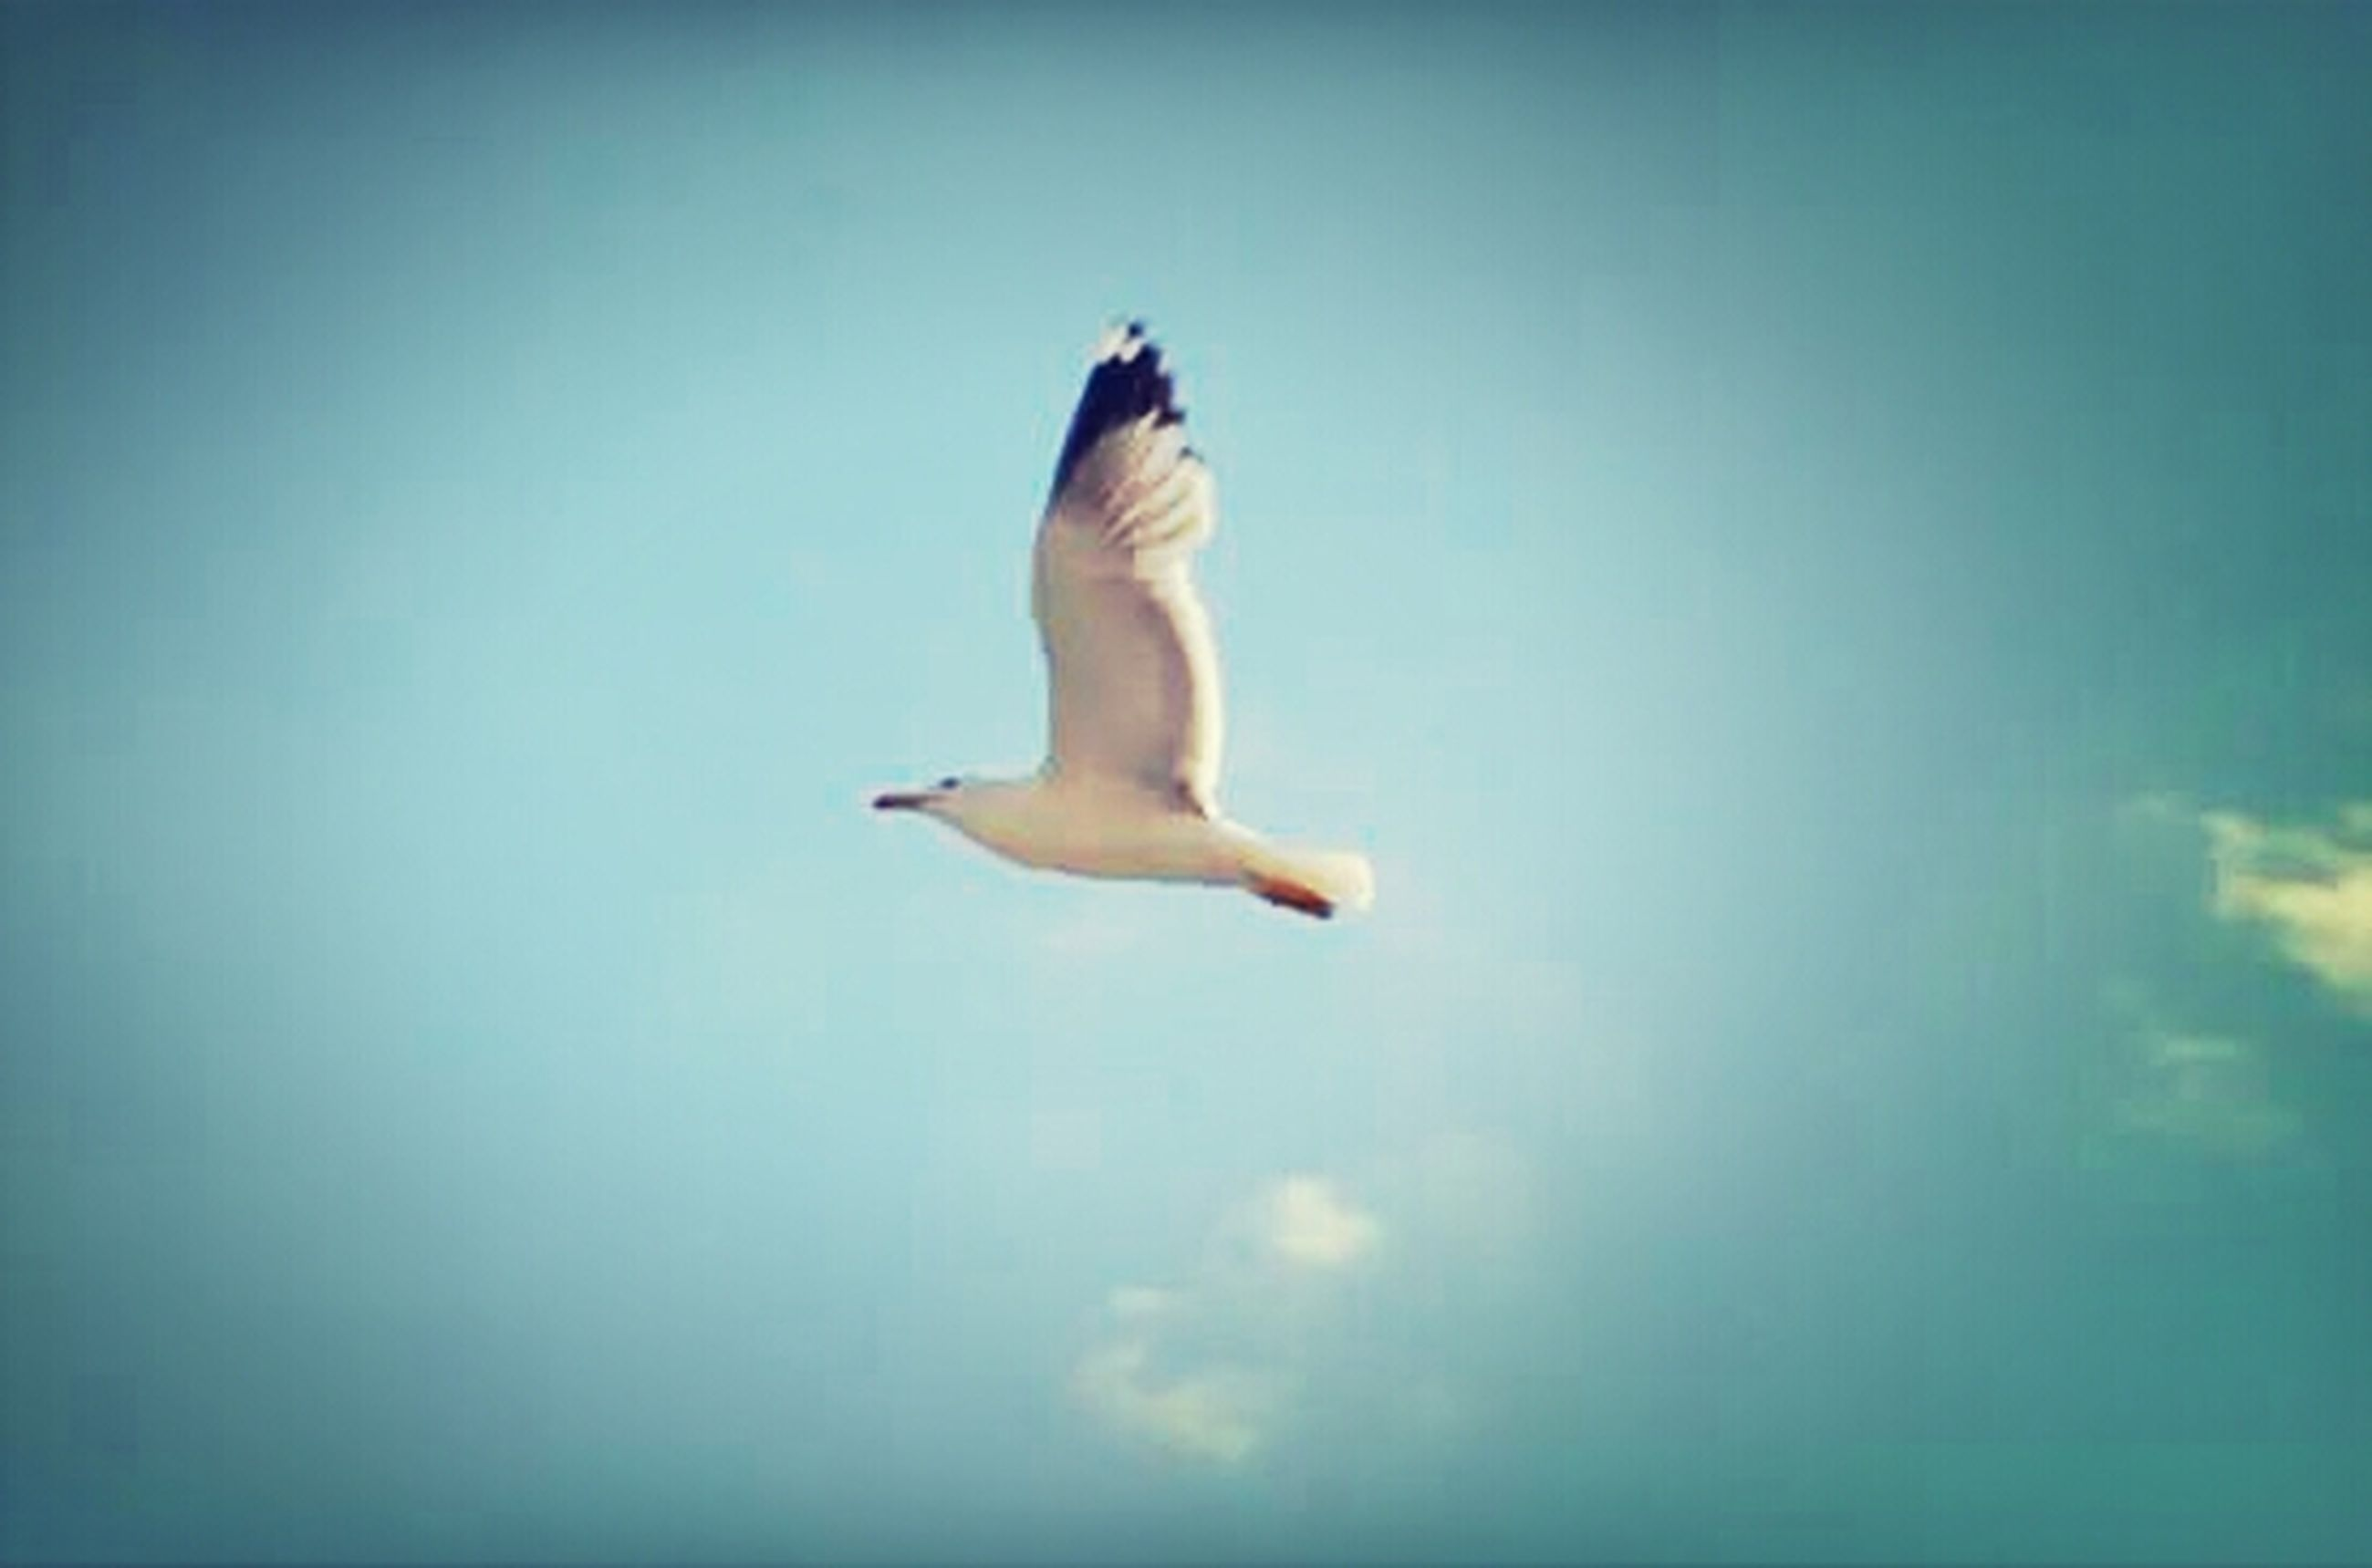 one animal, bird, animal themes, flying, spread wings, low angle view, mid-air, full length, copy space, wildlife, clear sky, sky, animals in the wild, blue, seagull, nature, freedom, side view, motion, beauty in nature